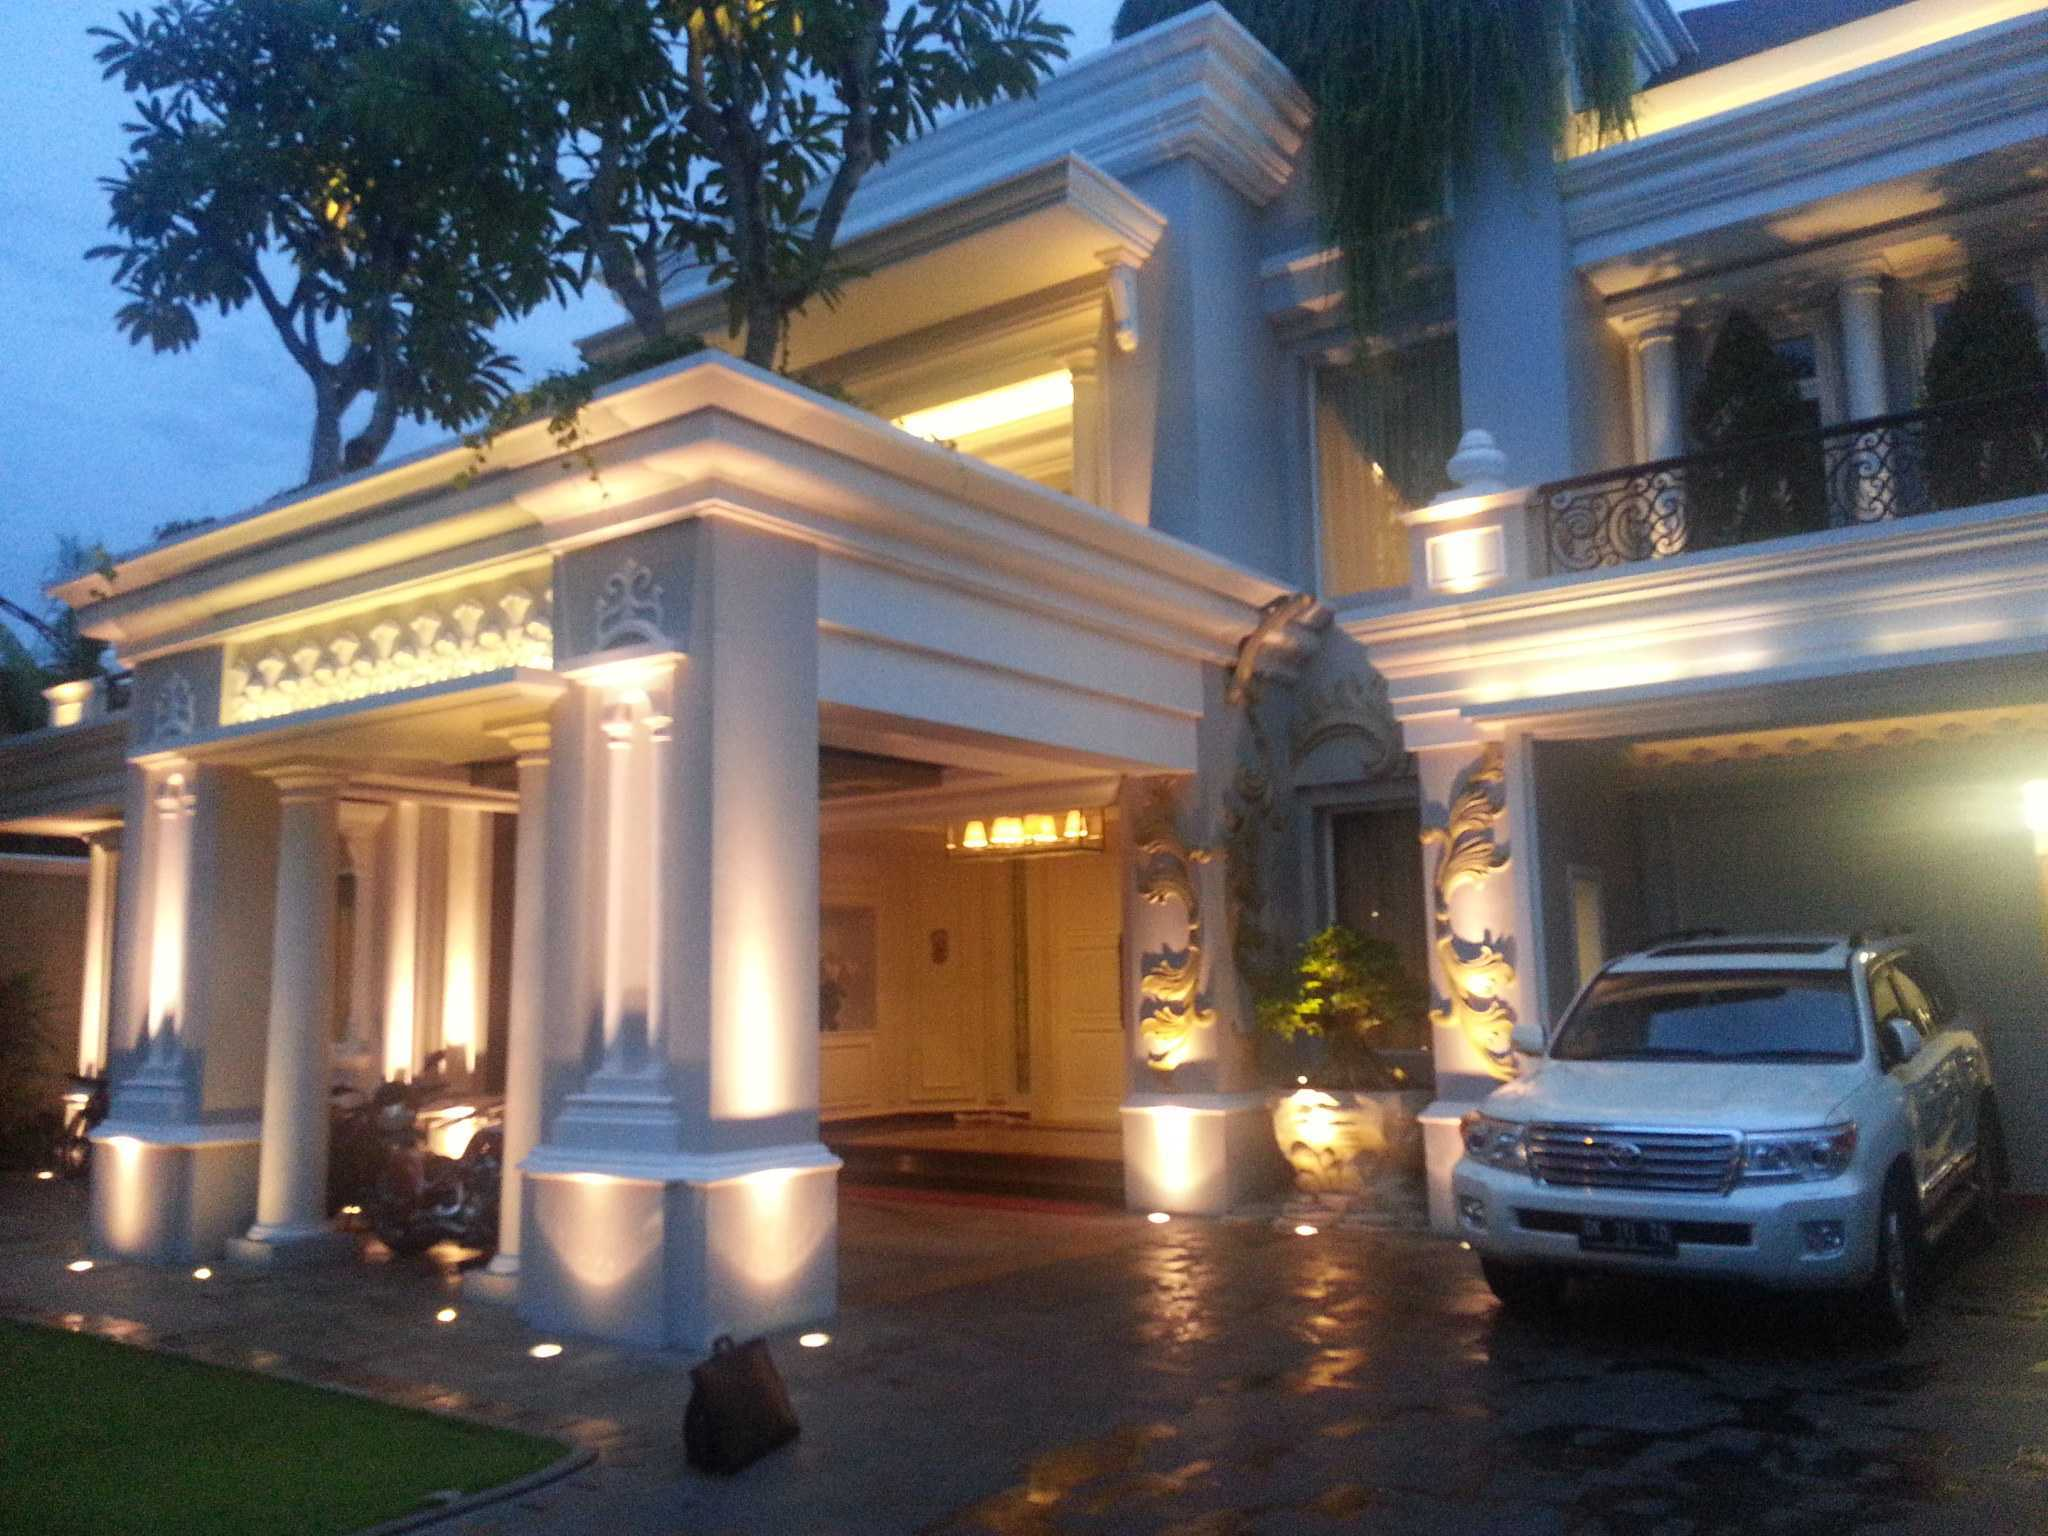 A N J A R S I T E K Classic House - Renon / Bali Renon, South Denpasar, Denpasar City, Bali, Indonesia Renon, South Denpasar, Denpasar City, Bali, Indonesia Part Of Facade Klasik Part Of Facade 35294